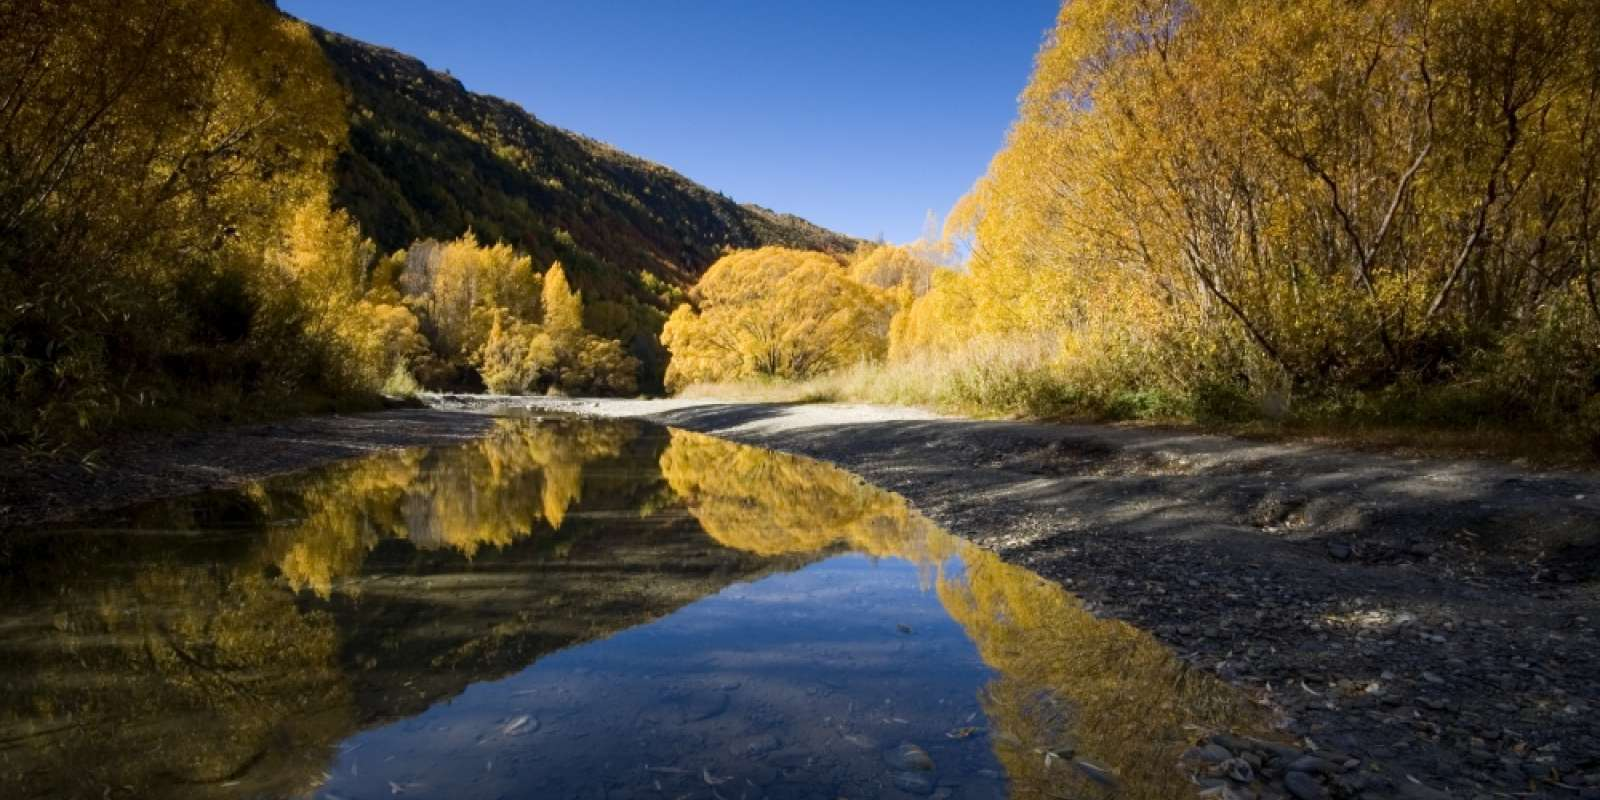 The Arrow River in Autumn, Arrowtown